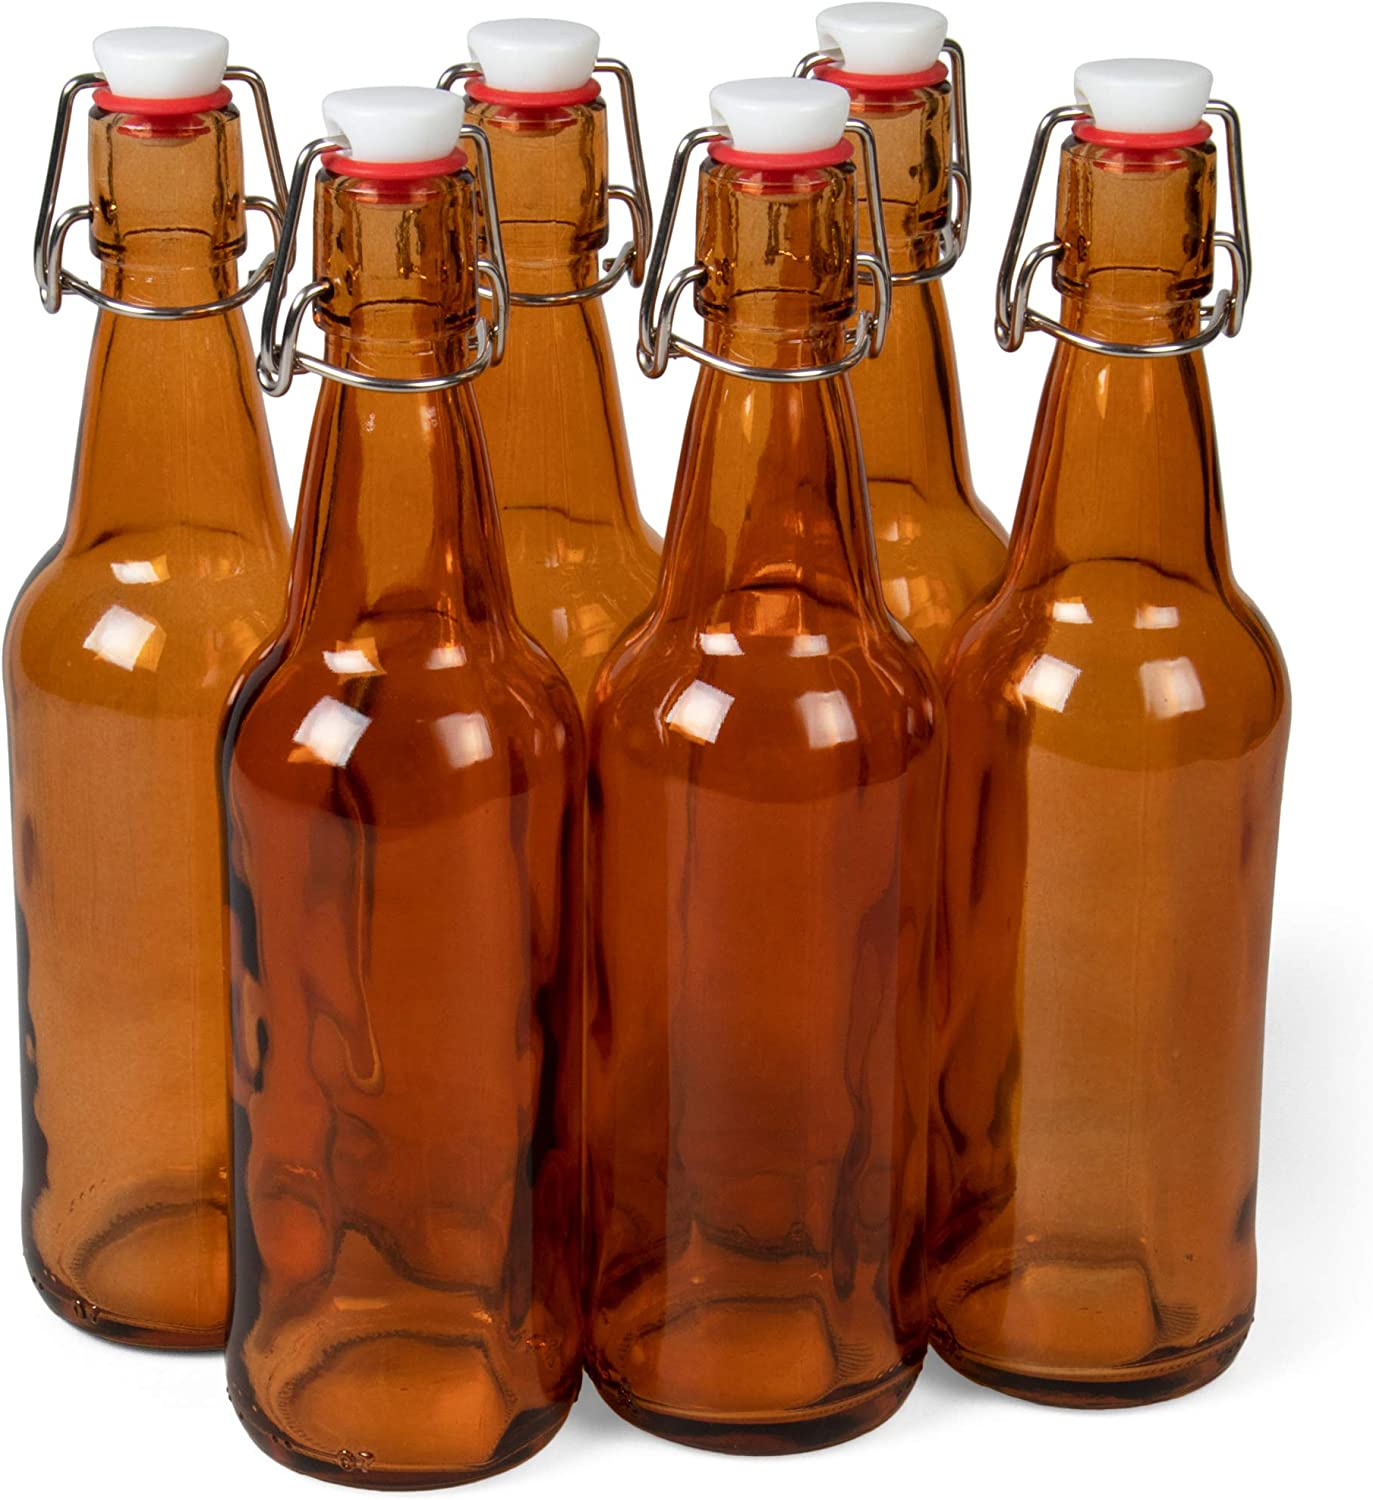 16 oz. Amber Glass Grolsch Beer Bottles, Pint Size – Airtight Seal with Swing Top/Flip Top Stoppers – Supplies for Home Brewing & Fermenting of Alcohol, Kombucha Tea, Wine, Homemade Soda (6-pack)